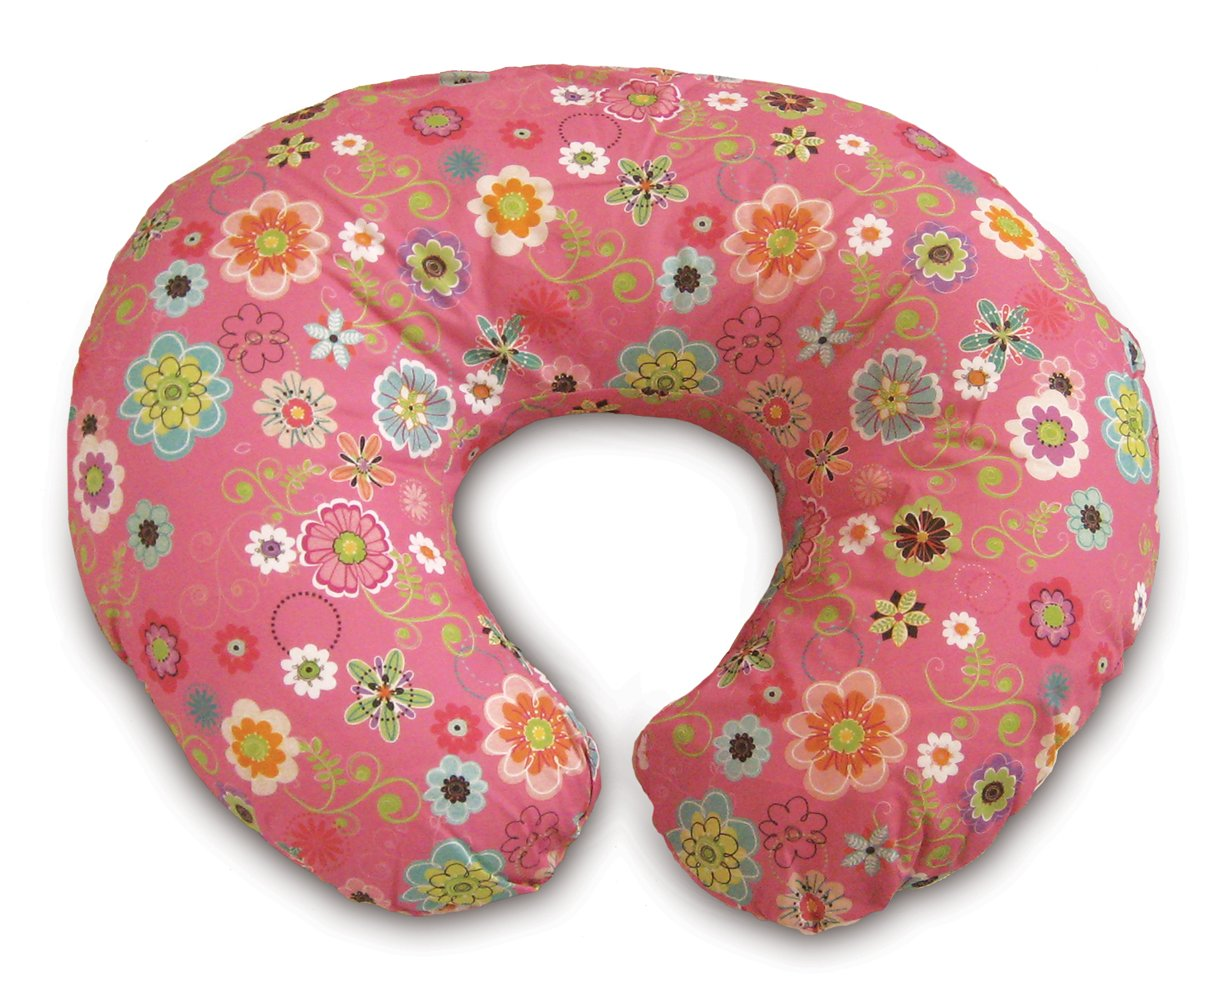 The Boppy Company Boppy Pillow With Slipcover - Wildflowers 2200115K 2PK